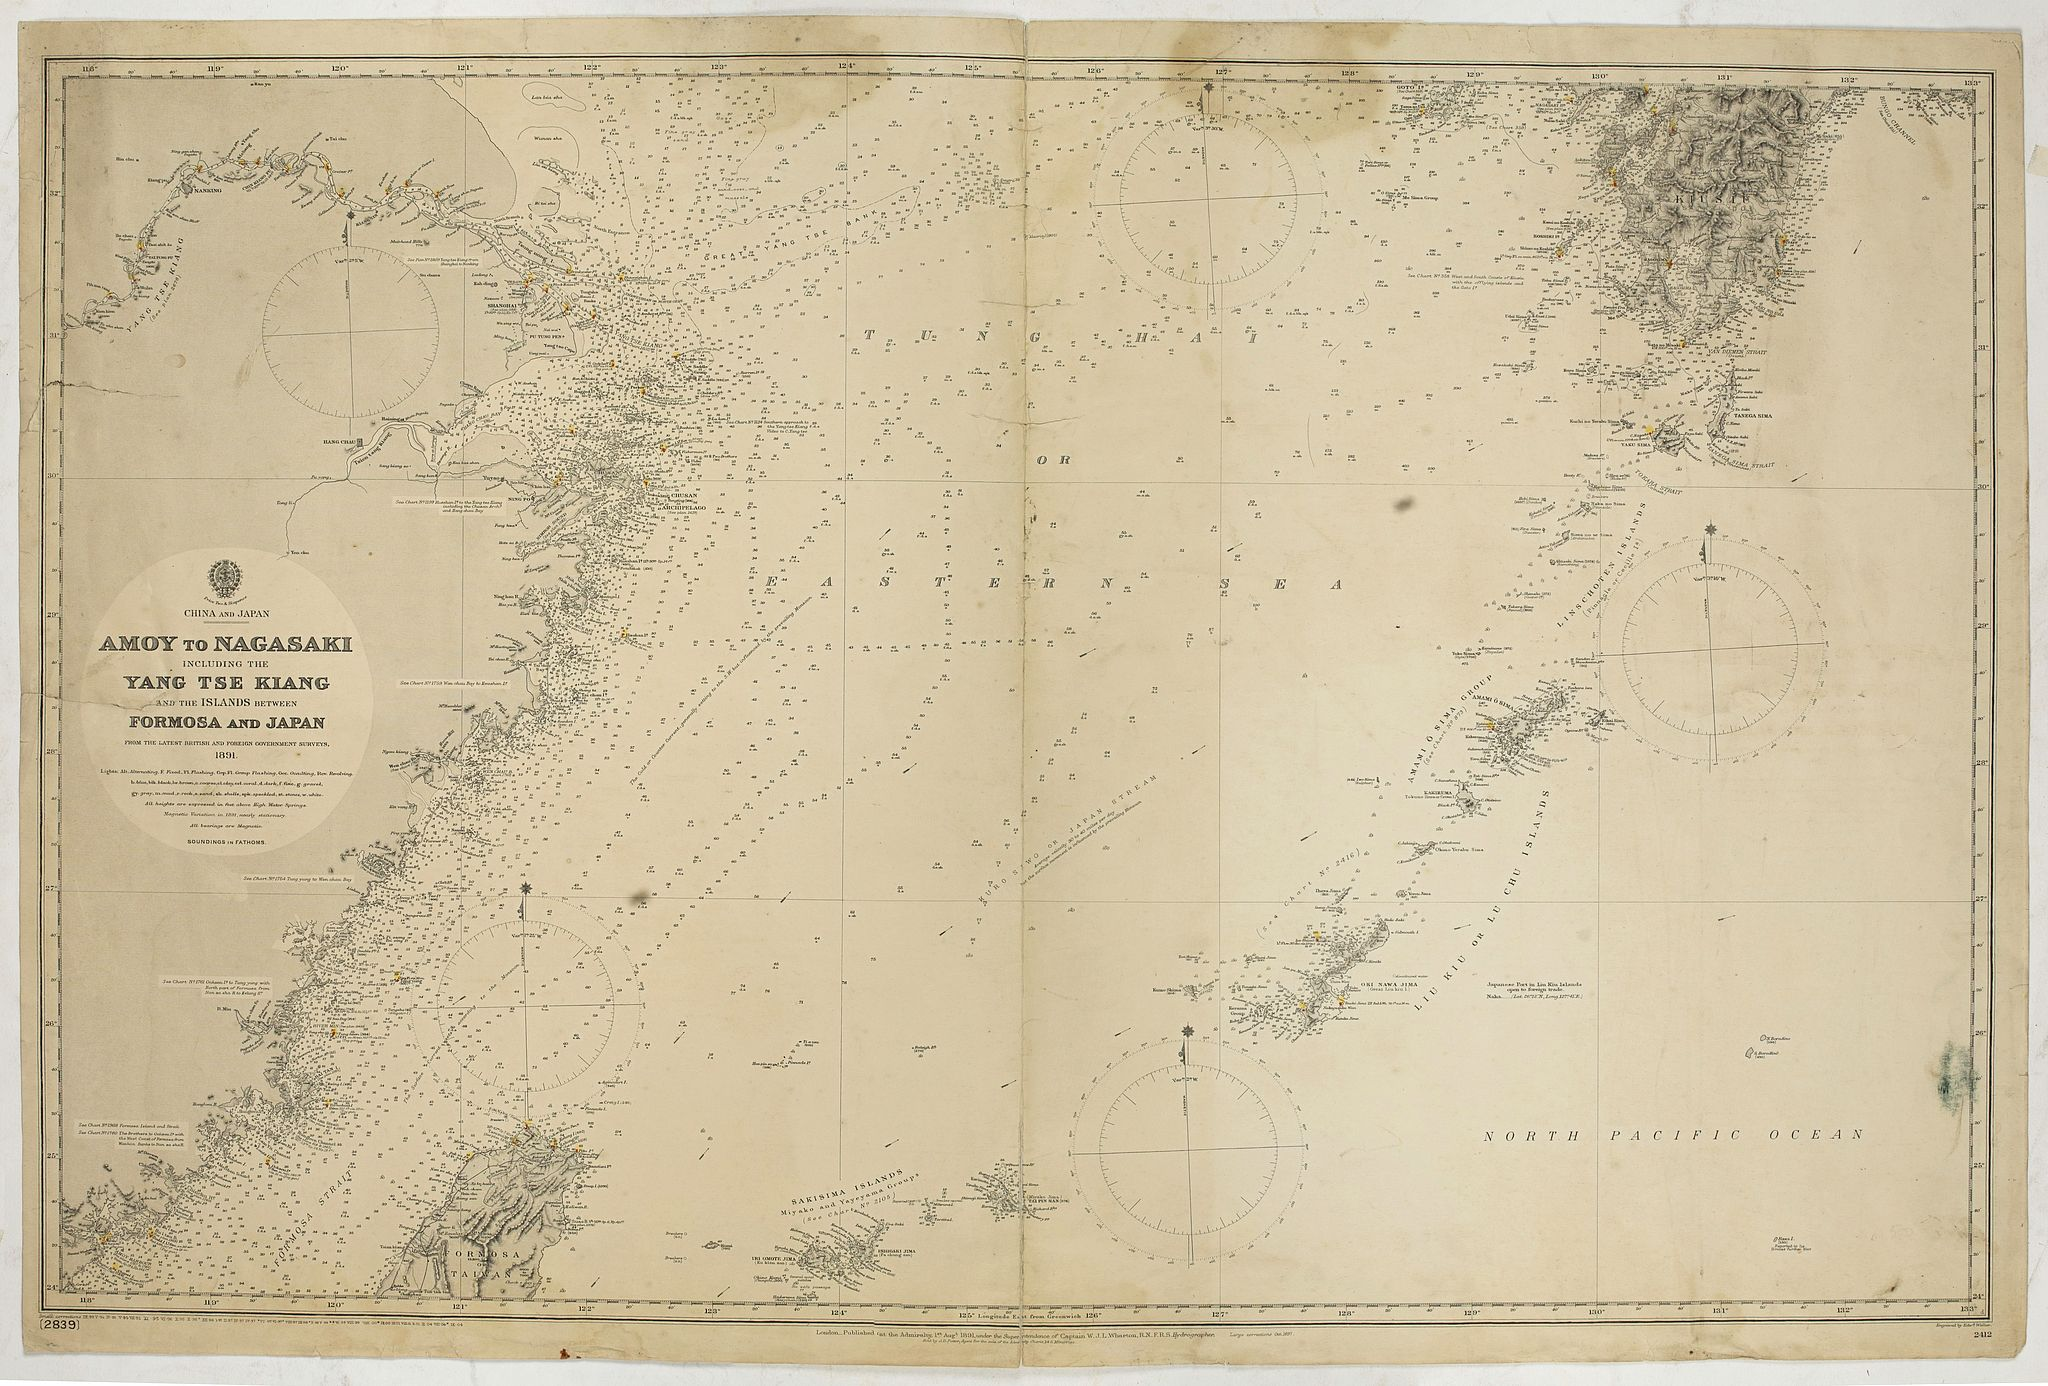 THE HYDROGRAPHIC OFFICE OF THE ADMIRALTY -  China & Japan - Amoy to Nagasaki including the Yang Tse Kiang and the Islands between Formosa and japan..